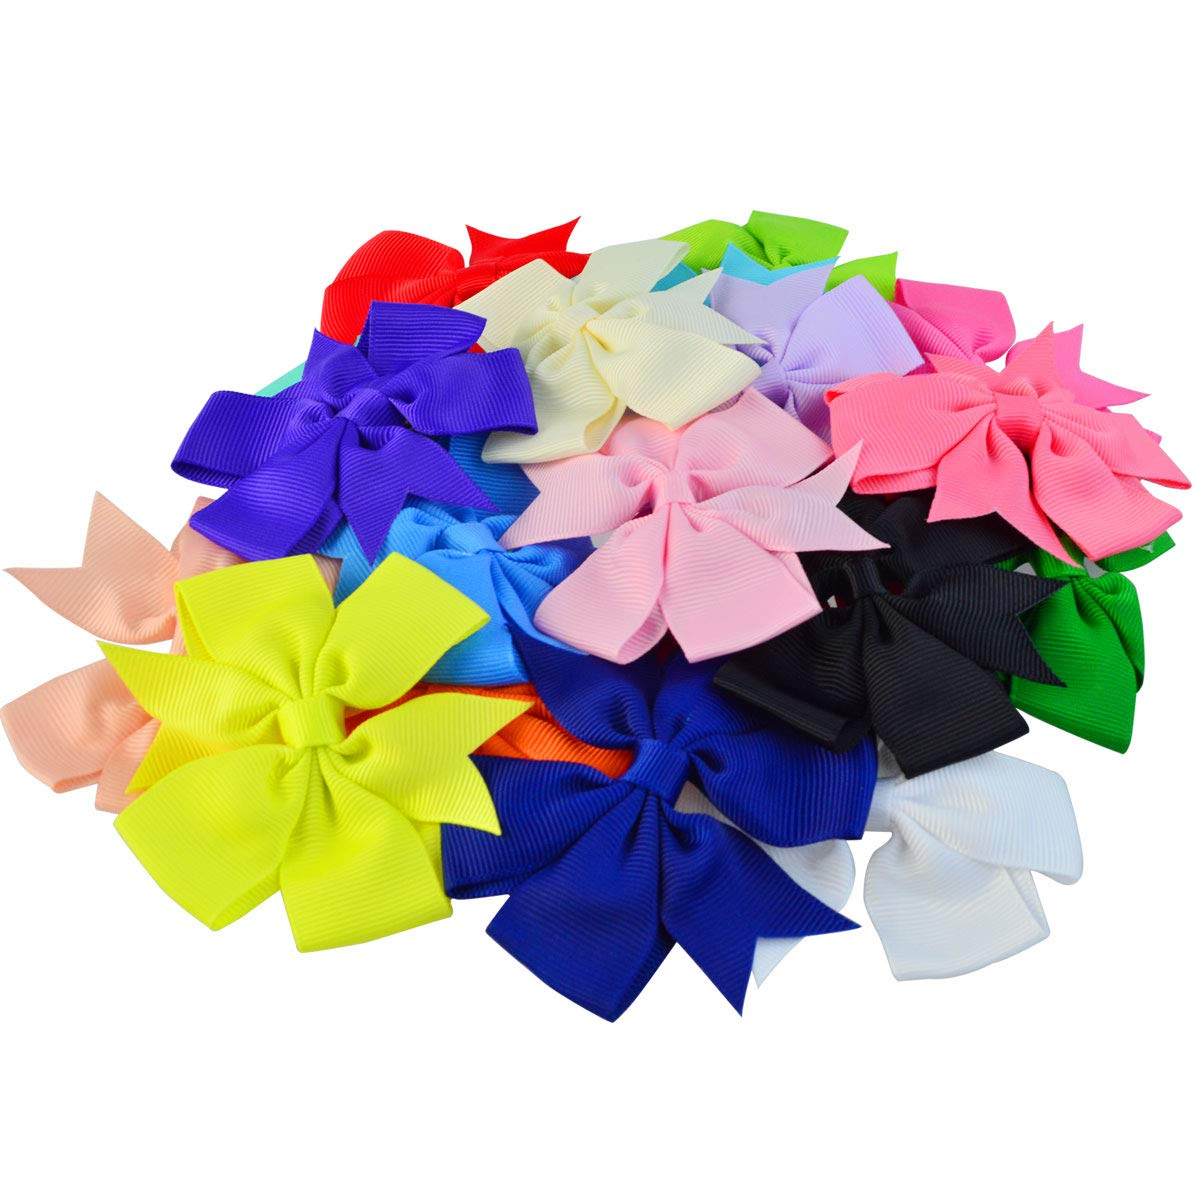 20 pcs 3 inch Hair Bows, baotongle Boutique Hair Bows Girls Kids Alligator Clip Grosgrain Ribbon Hair Clips for Baby Girls Teens Toddlers Friends